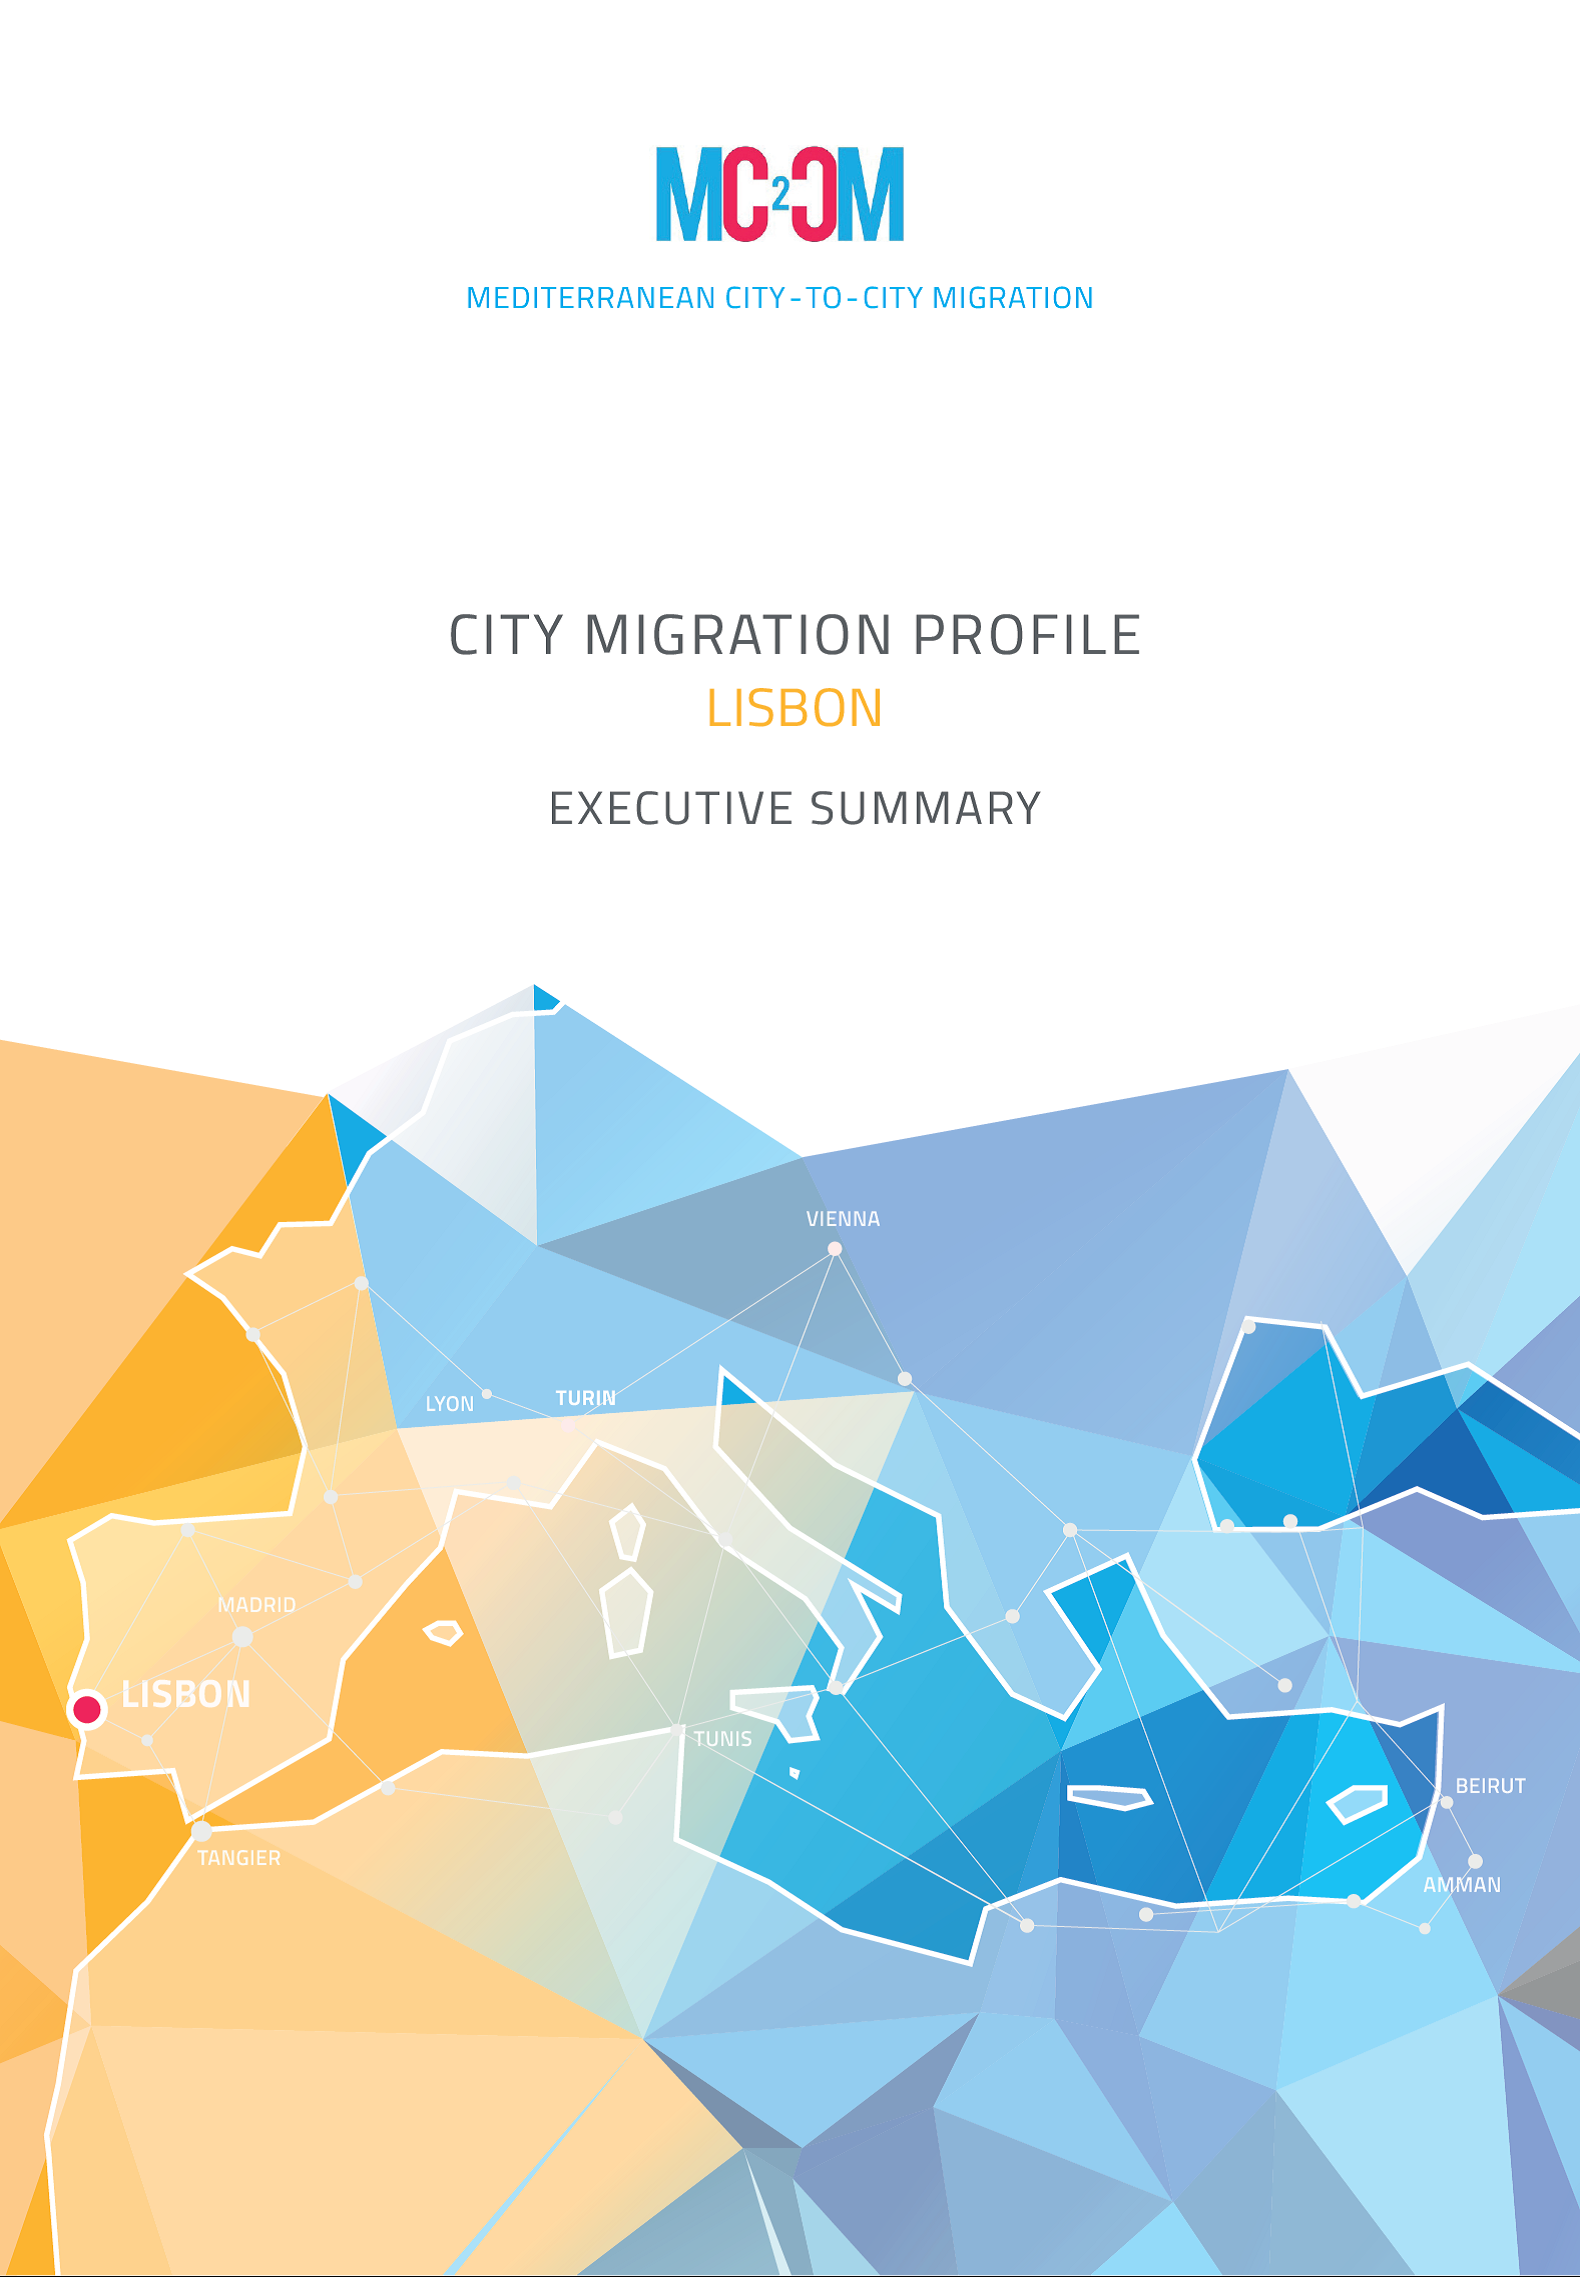 City Migration Profile Executive Summary - Lisbon